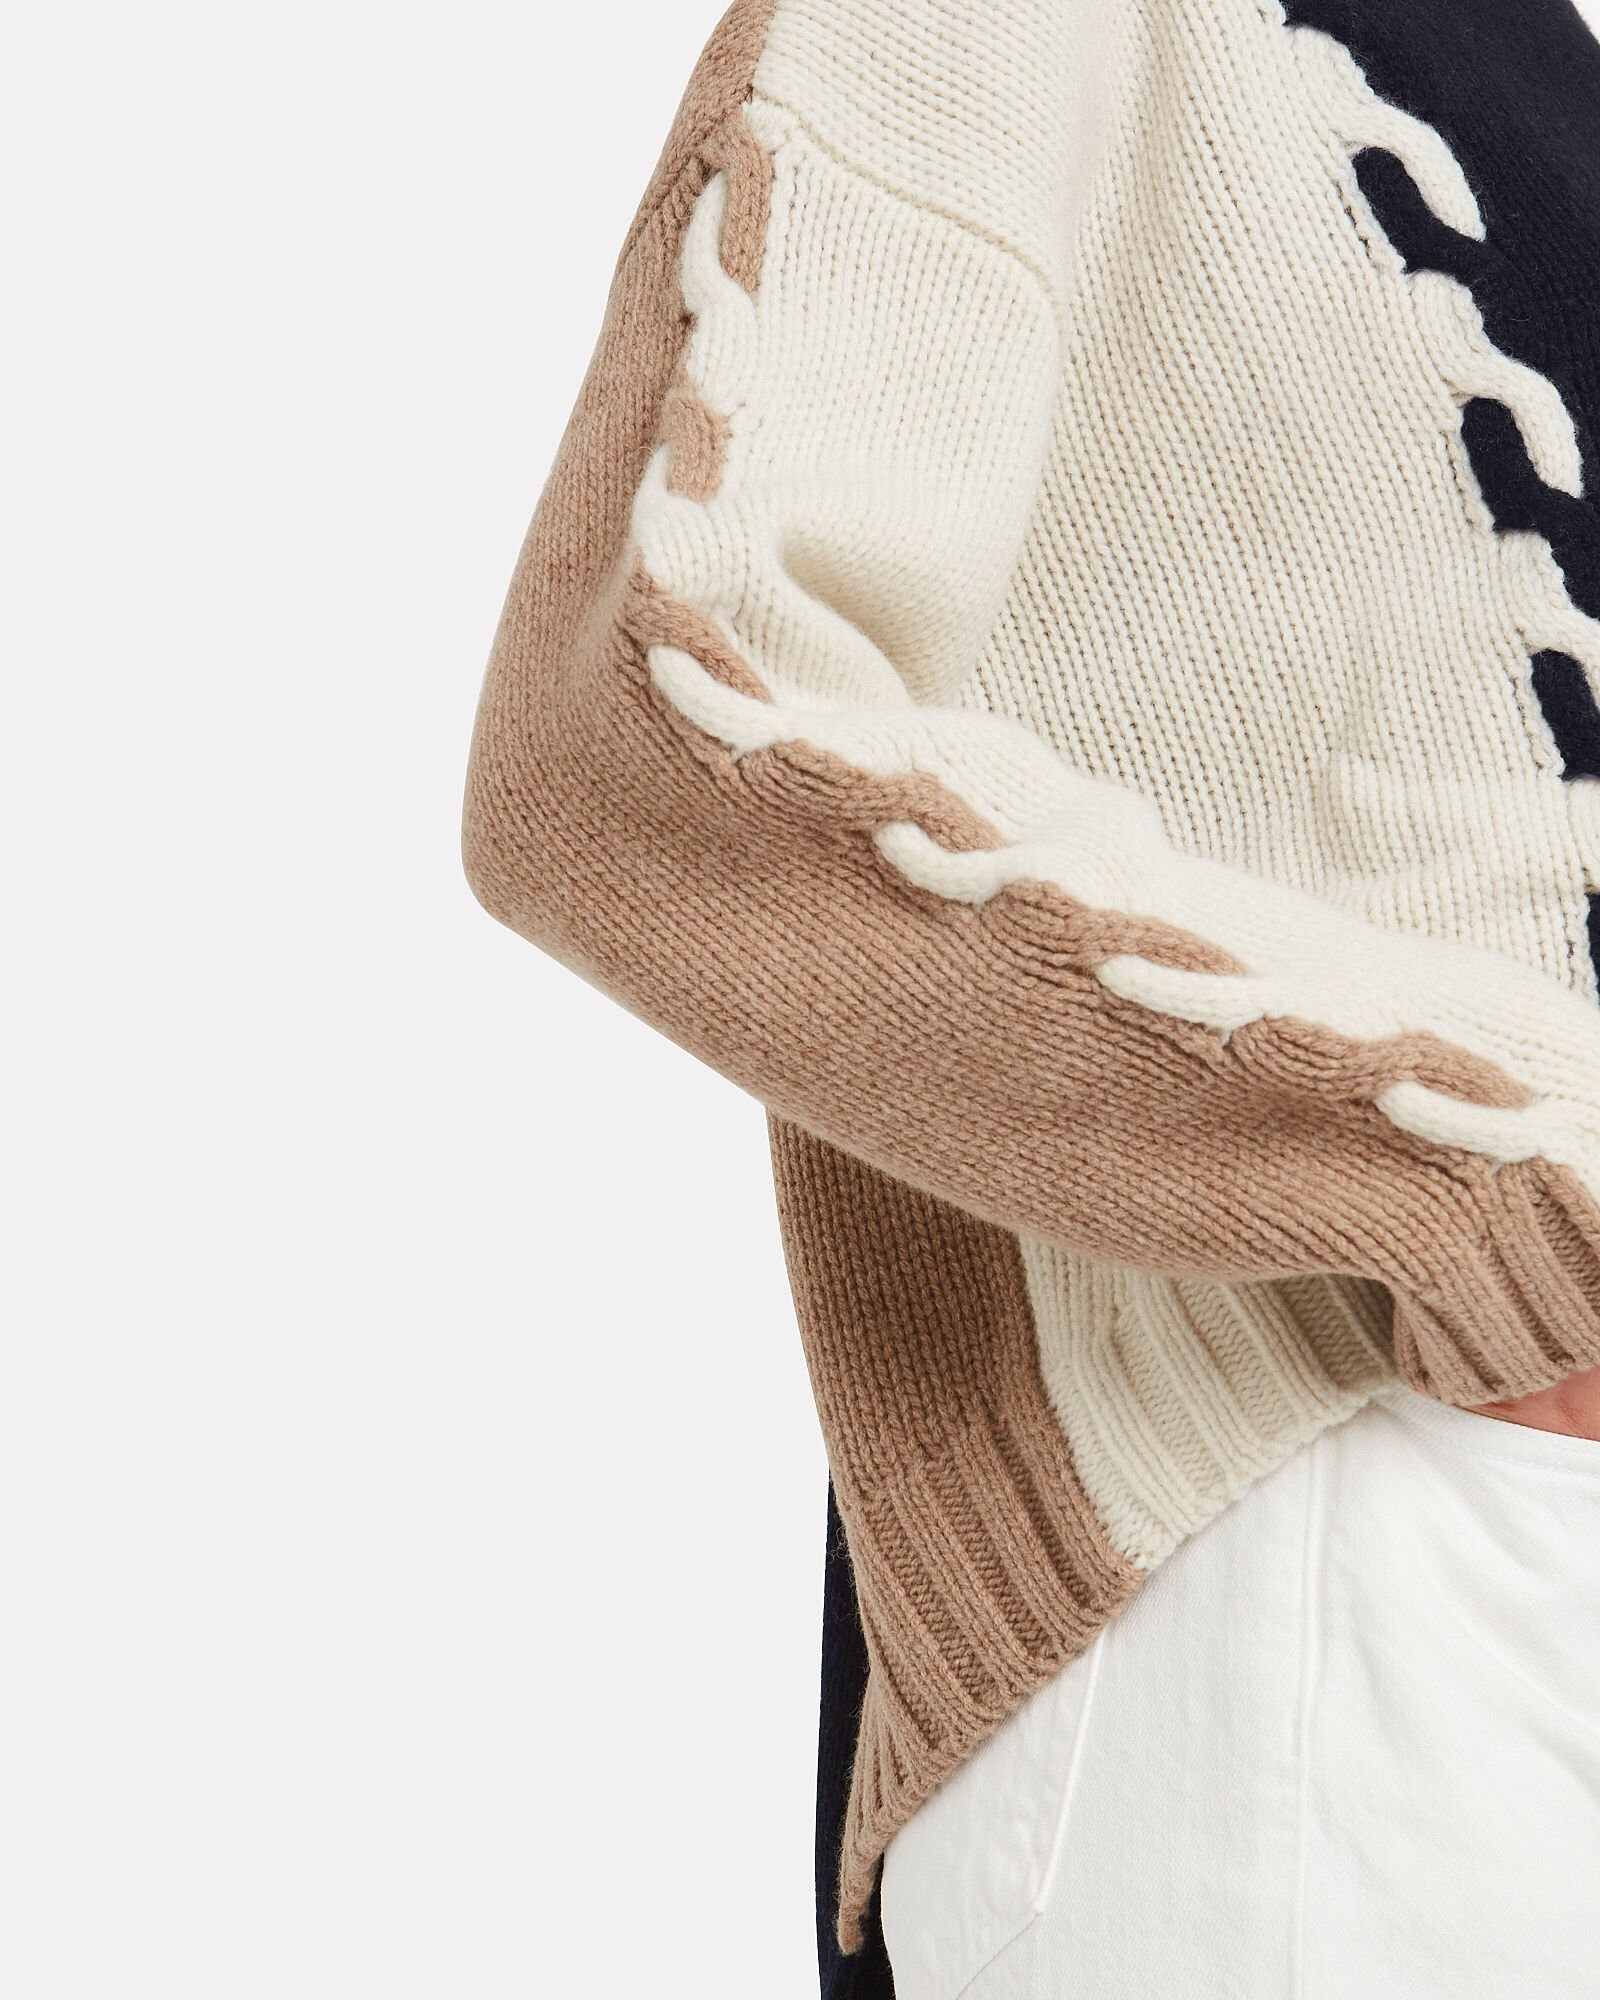 Colorblocked Cable Knit Sweater, NAVY/BEIGE/WHITE, hi-res